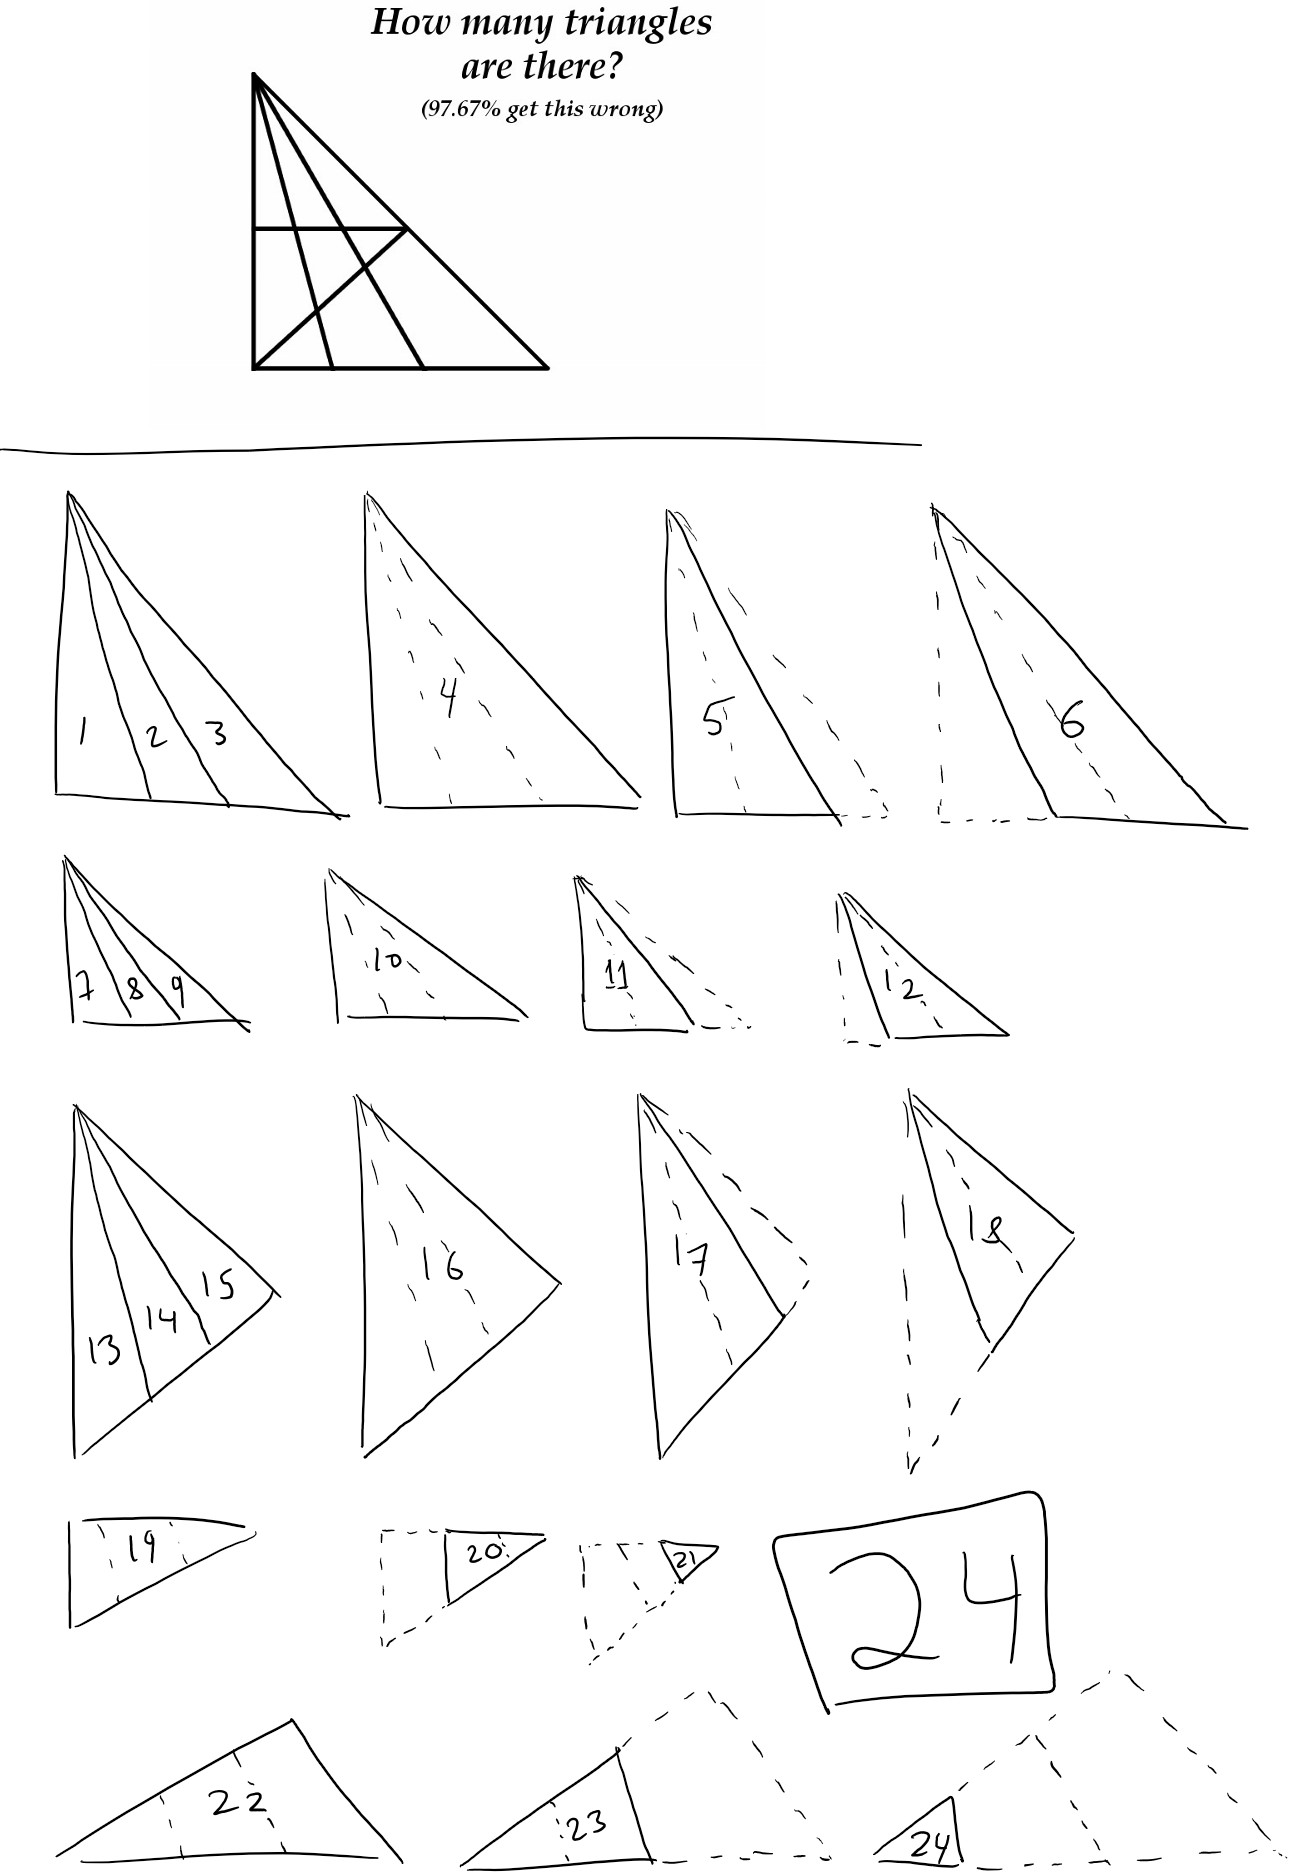 Counting Triangles Puzzle (SOLUTION)